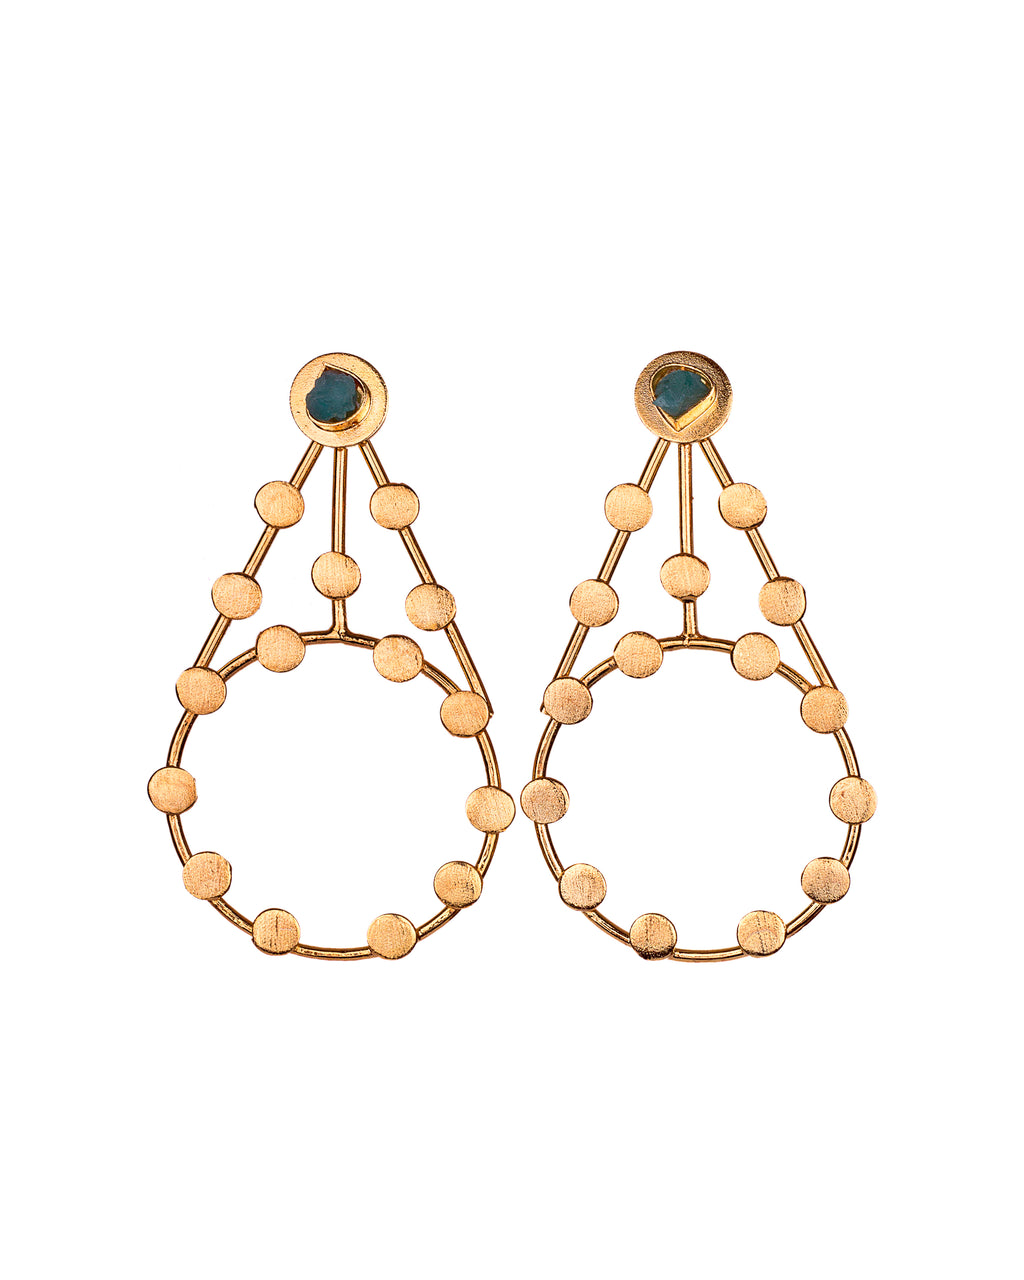 Olivia Constellations Collection 2 In 1 XL 24k Gold Plated and Bronze Earrings - TAO Company Jewelry